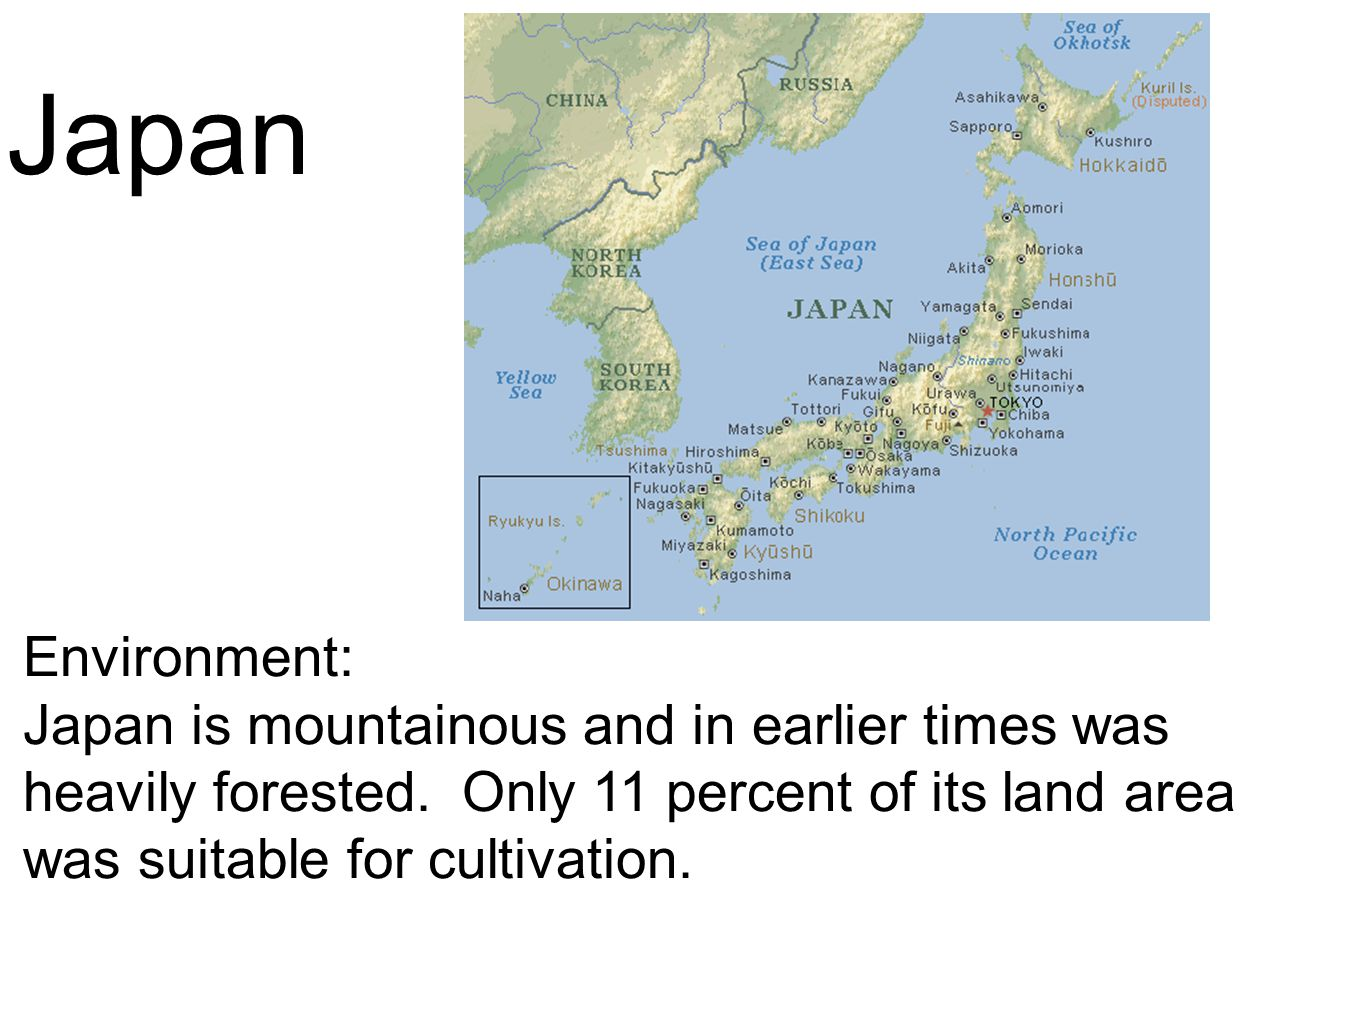 Japan Environment: Japan is mountainous and in earlier times was heavily forested. Only 11 percent of its land area was suitable for cultivation.